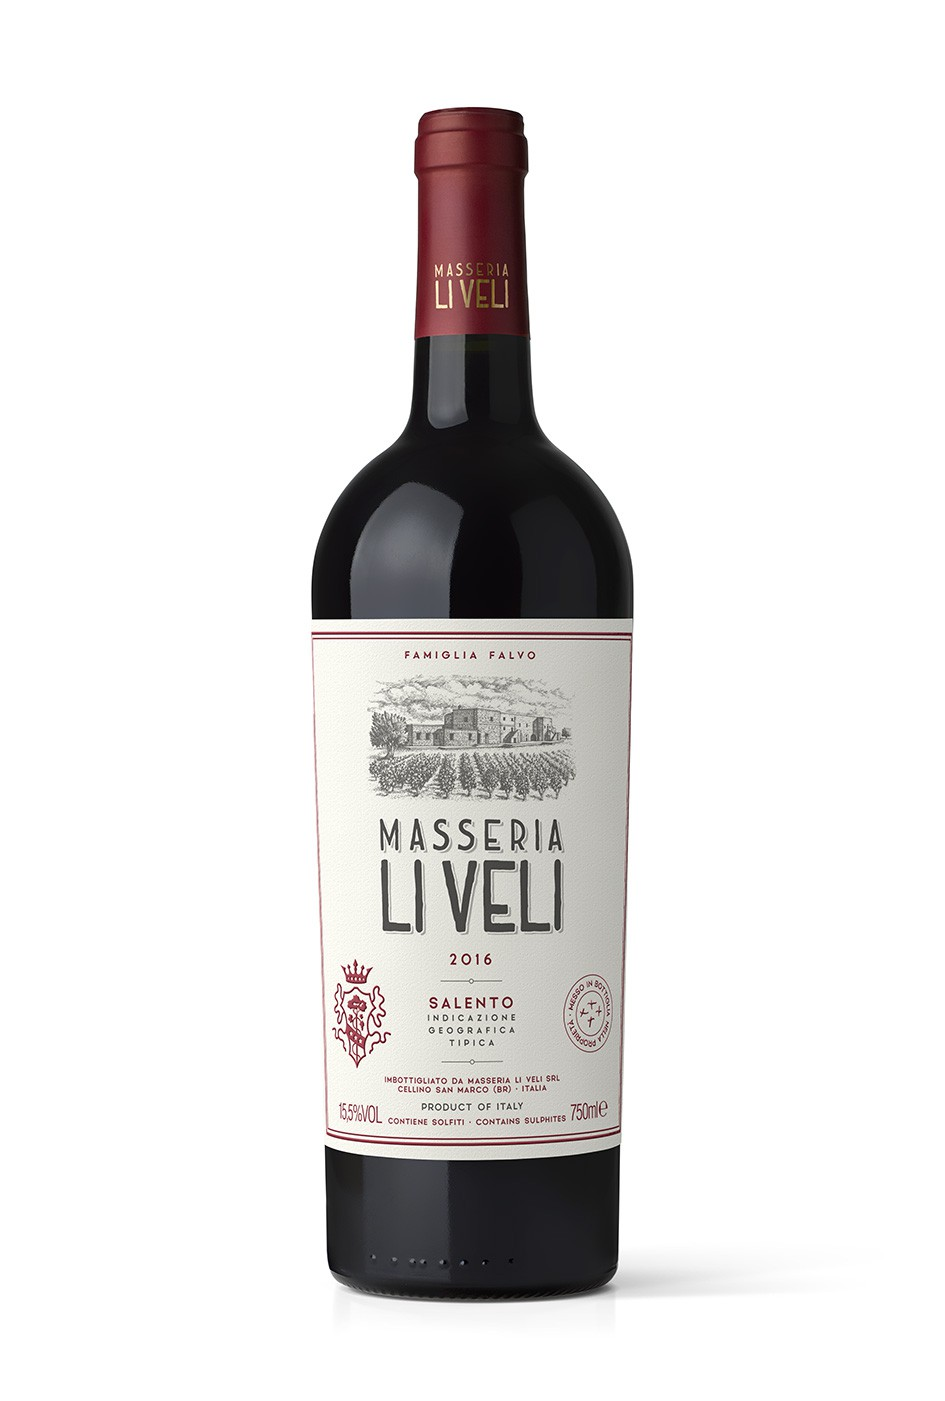 LiVeli MLV MAD13@025x - Masseria Li Veli MLV Label Design